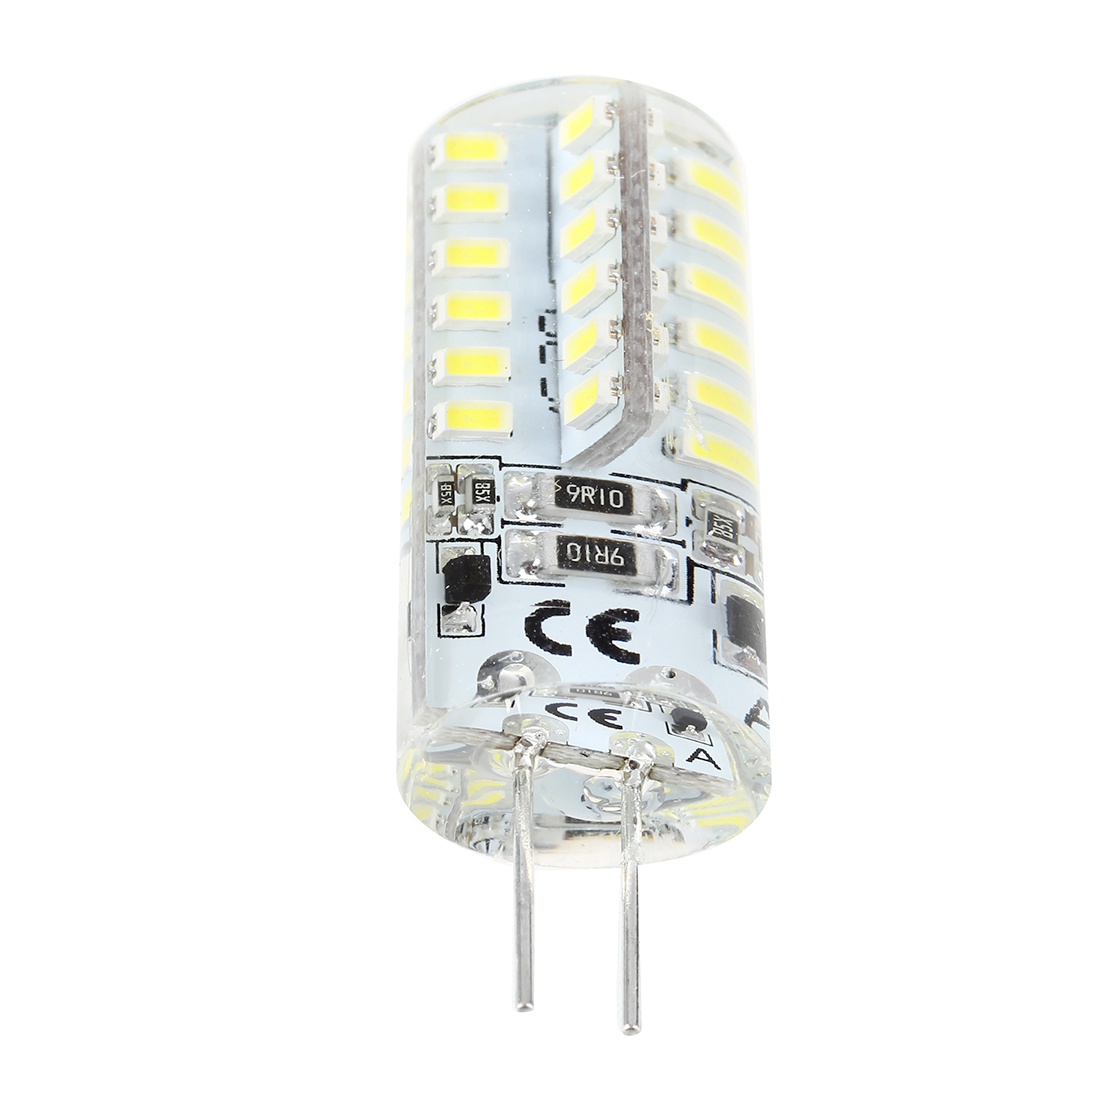 <font><b>G4</b></font> <font><b>2W</b></font> 48 LED 3014 SMD White Marine Boat Light Bulb Lamp AC/DC <font><b>12V</b></font> 6500K image